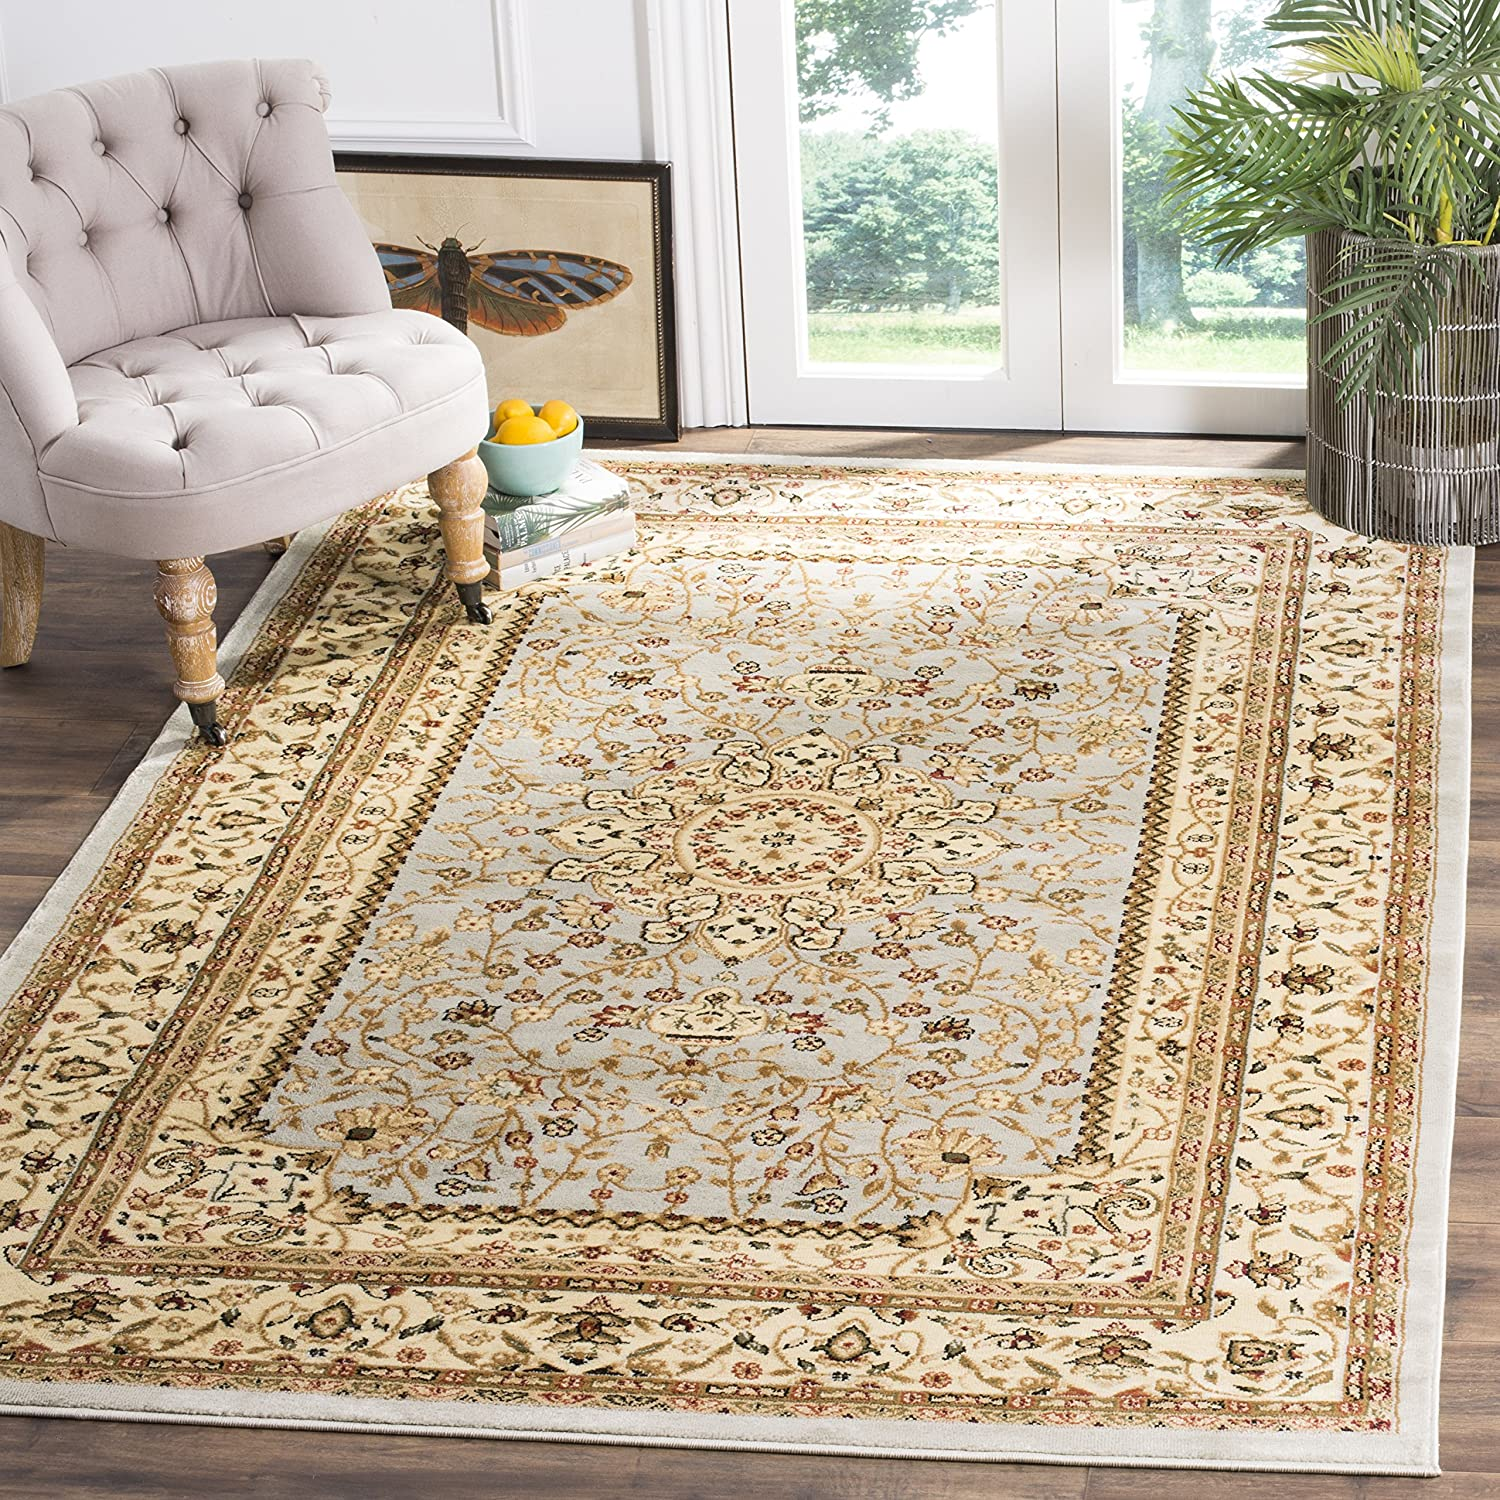 Safavieh Lyndhurst Collection LNH213G Grey and Beige Area Rug, 2 feet 3 inches by 4 feet (2'3 x 4') LNH213G-24